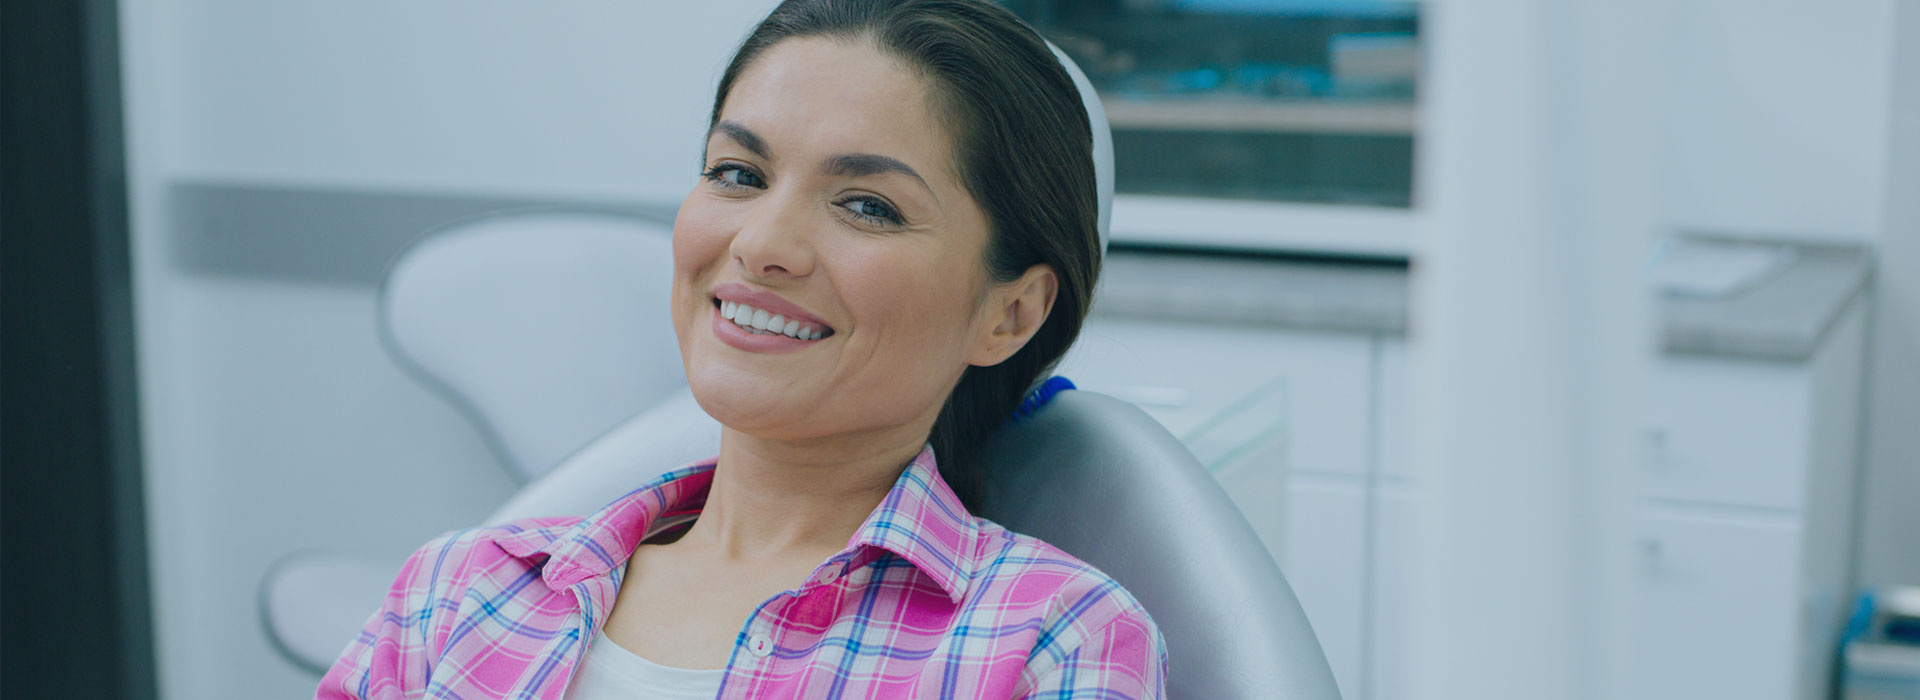 A woman is smiling after having invisalign